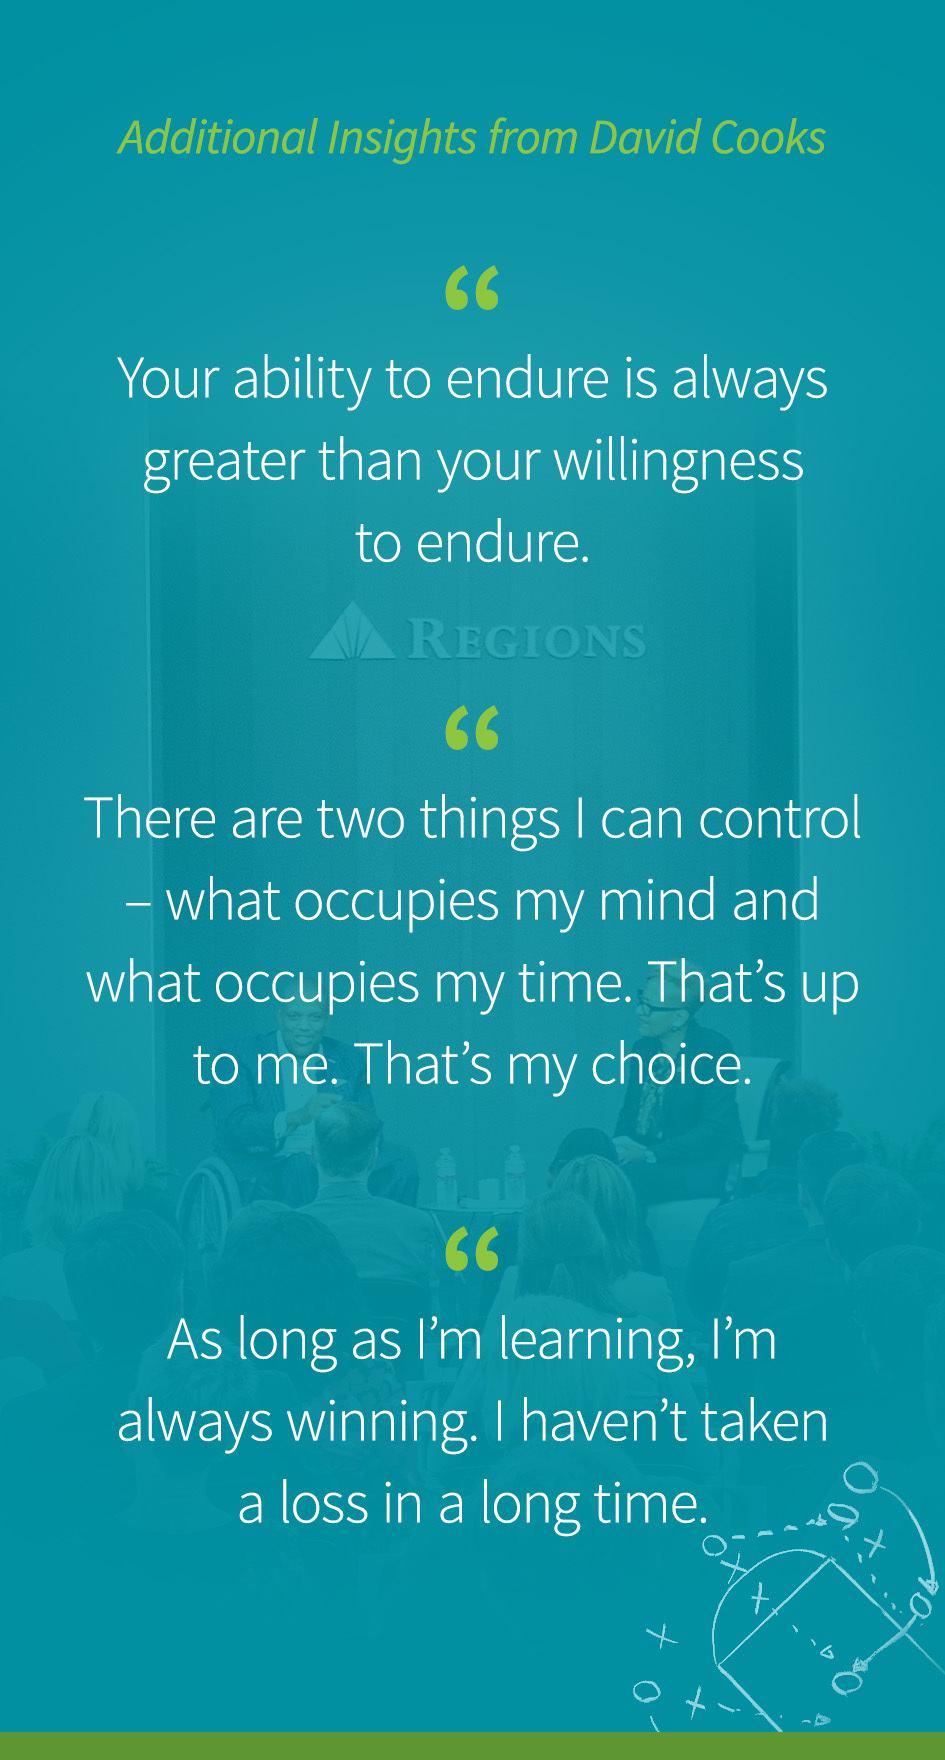 "Additional Insights from David Cooks: ""Your ability to endure is always greater than your willingness to endure."" ""There are two things I can control – what occupies my mind and what occupies my time. That's up to me. That's my choice."" ""As long as I'm learning, I'm always winning. I haven't taken a loss in a long time."""